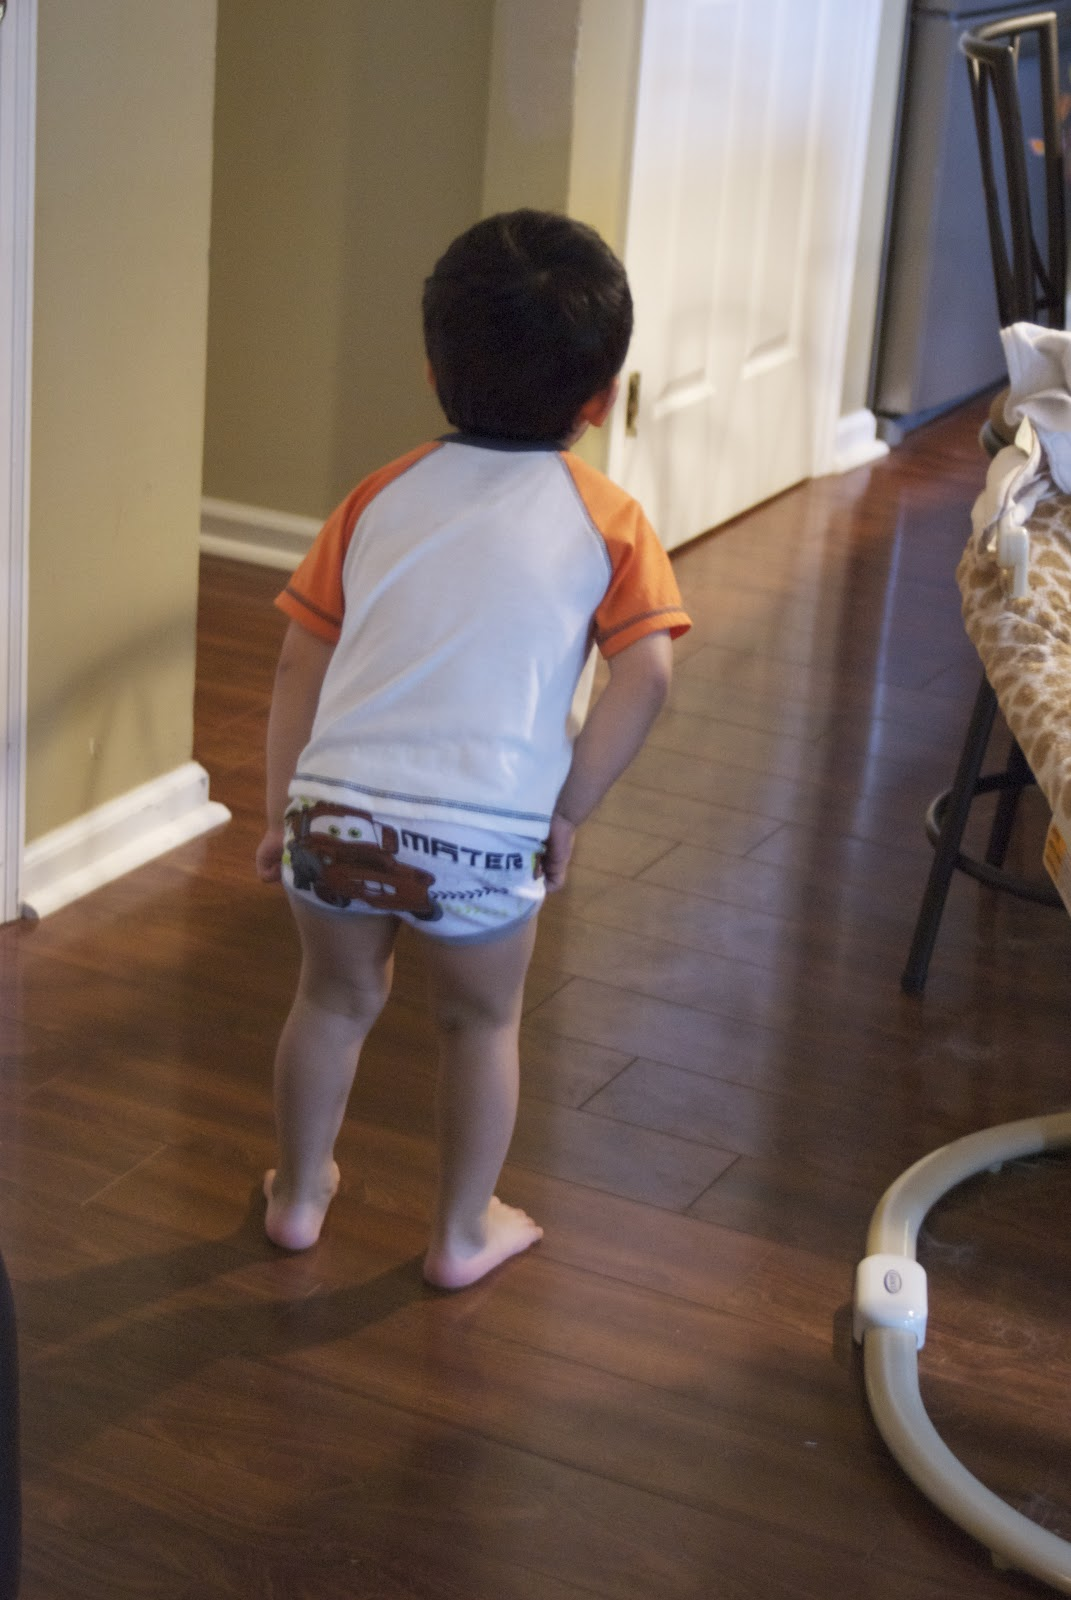 poop undie kids Ultimately, I think those accidents ended up being detrimental to the  potty-training process because when we ran out of clean underwear, he  just...didn't ...